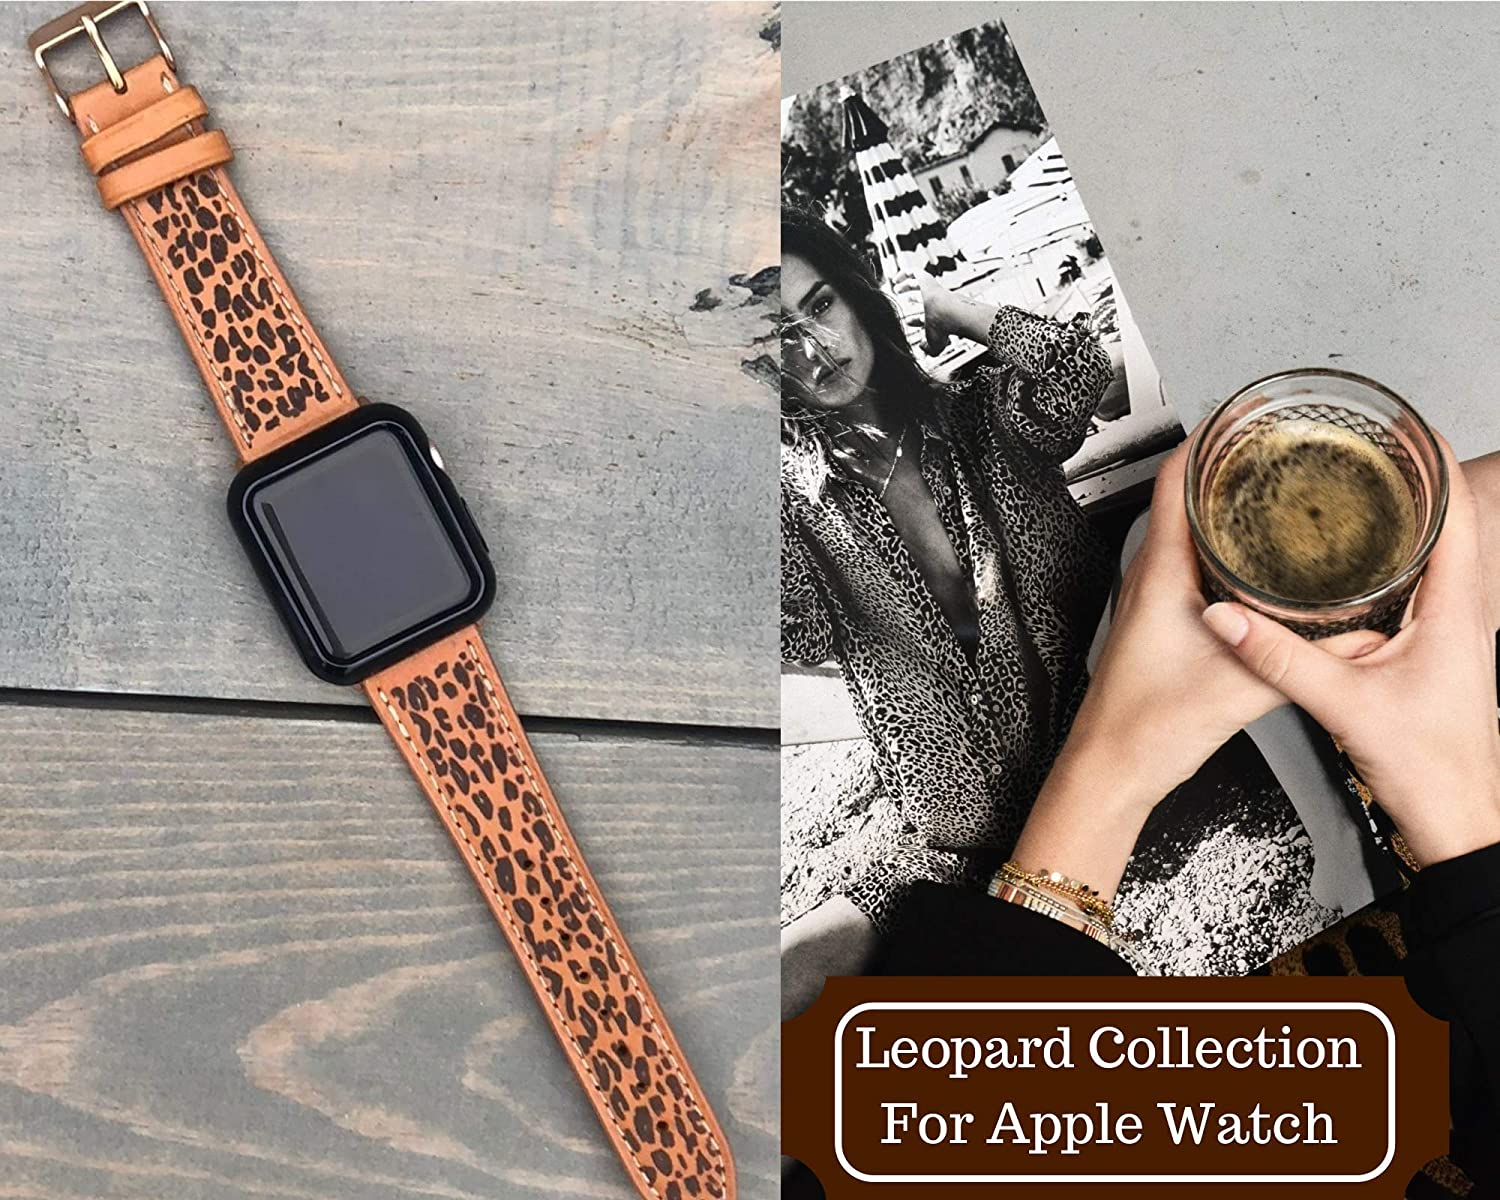 Personalized Apple Watch Band Leopard Watch Band Leather Apple Watch Band 38mm 40mm 42mm 44mm Custom Apple Watch Strap Animal Print Apple Watch